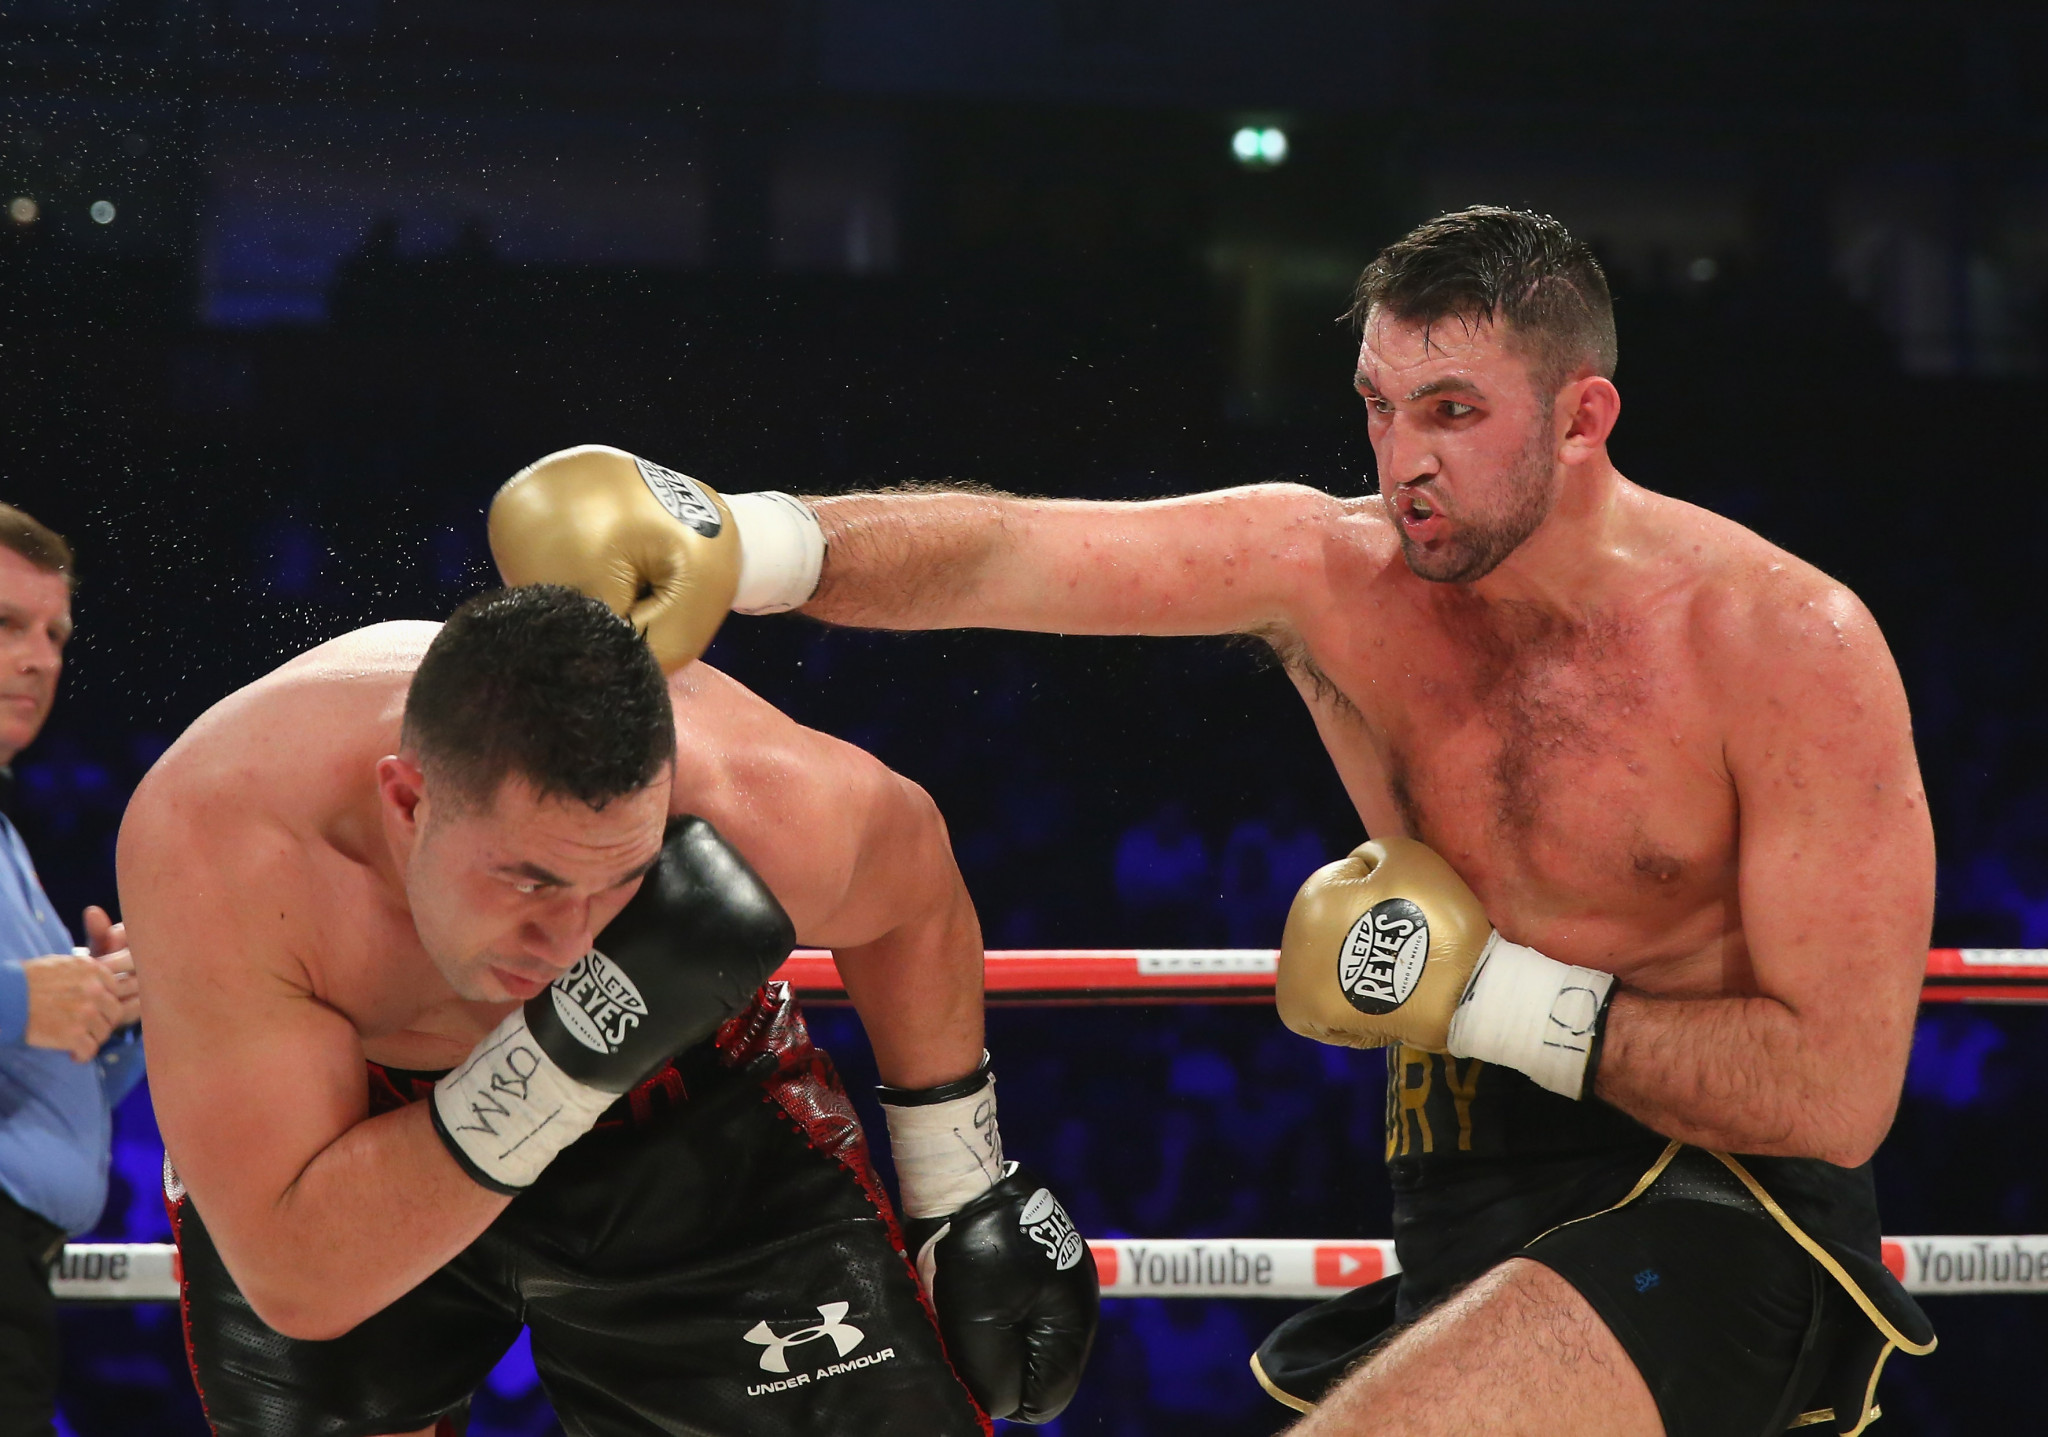 Hughie Fury lands a right shot on Joseph Parker during the WBO World Heavyweight Title fight at Manchester Arena on September 23, 2017 ©Getty Images